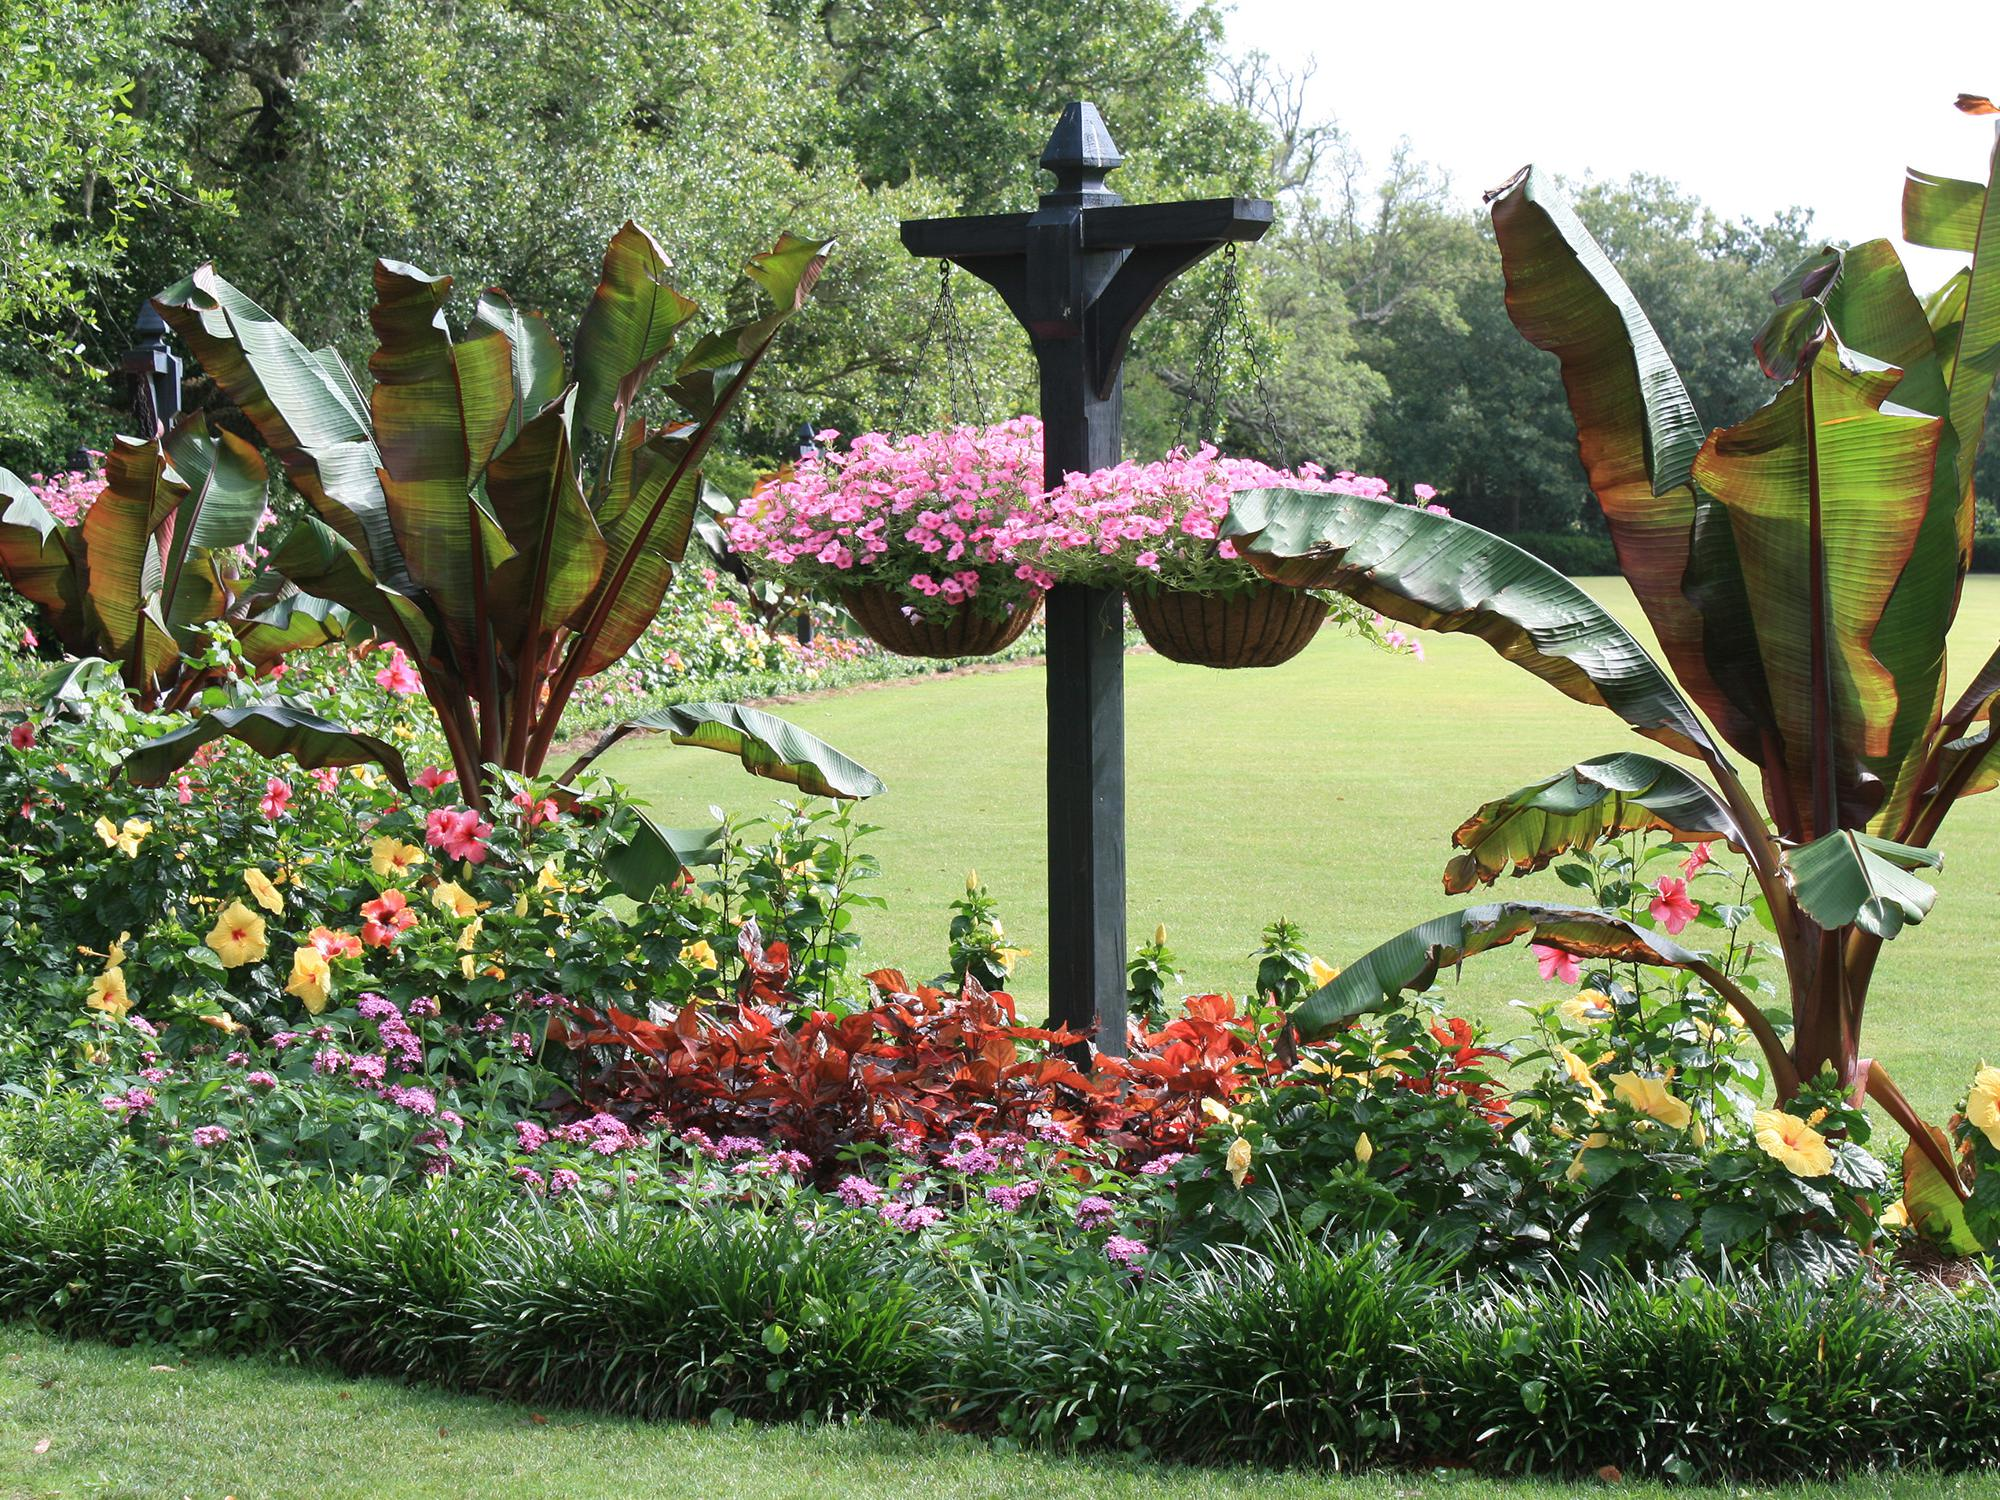 Mississippi State University Extension specialists will be on hand to present seminars for home gardeners on how to create landscapes like this one. (Photo by MSU Extension Service/Gary Bachman)